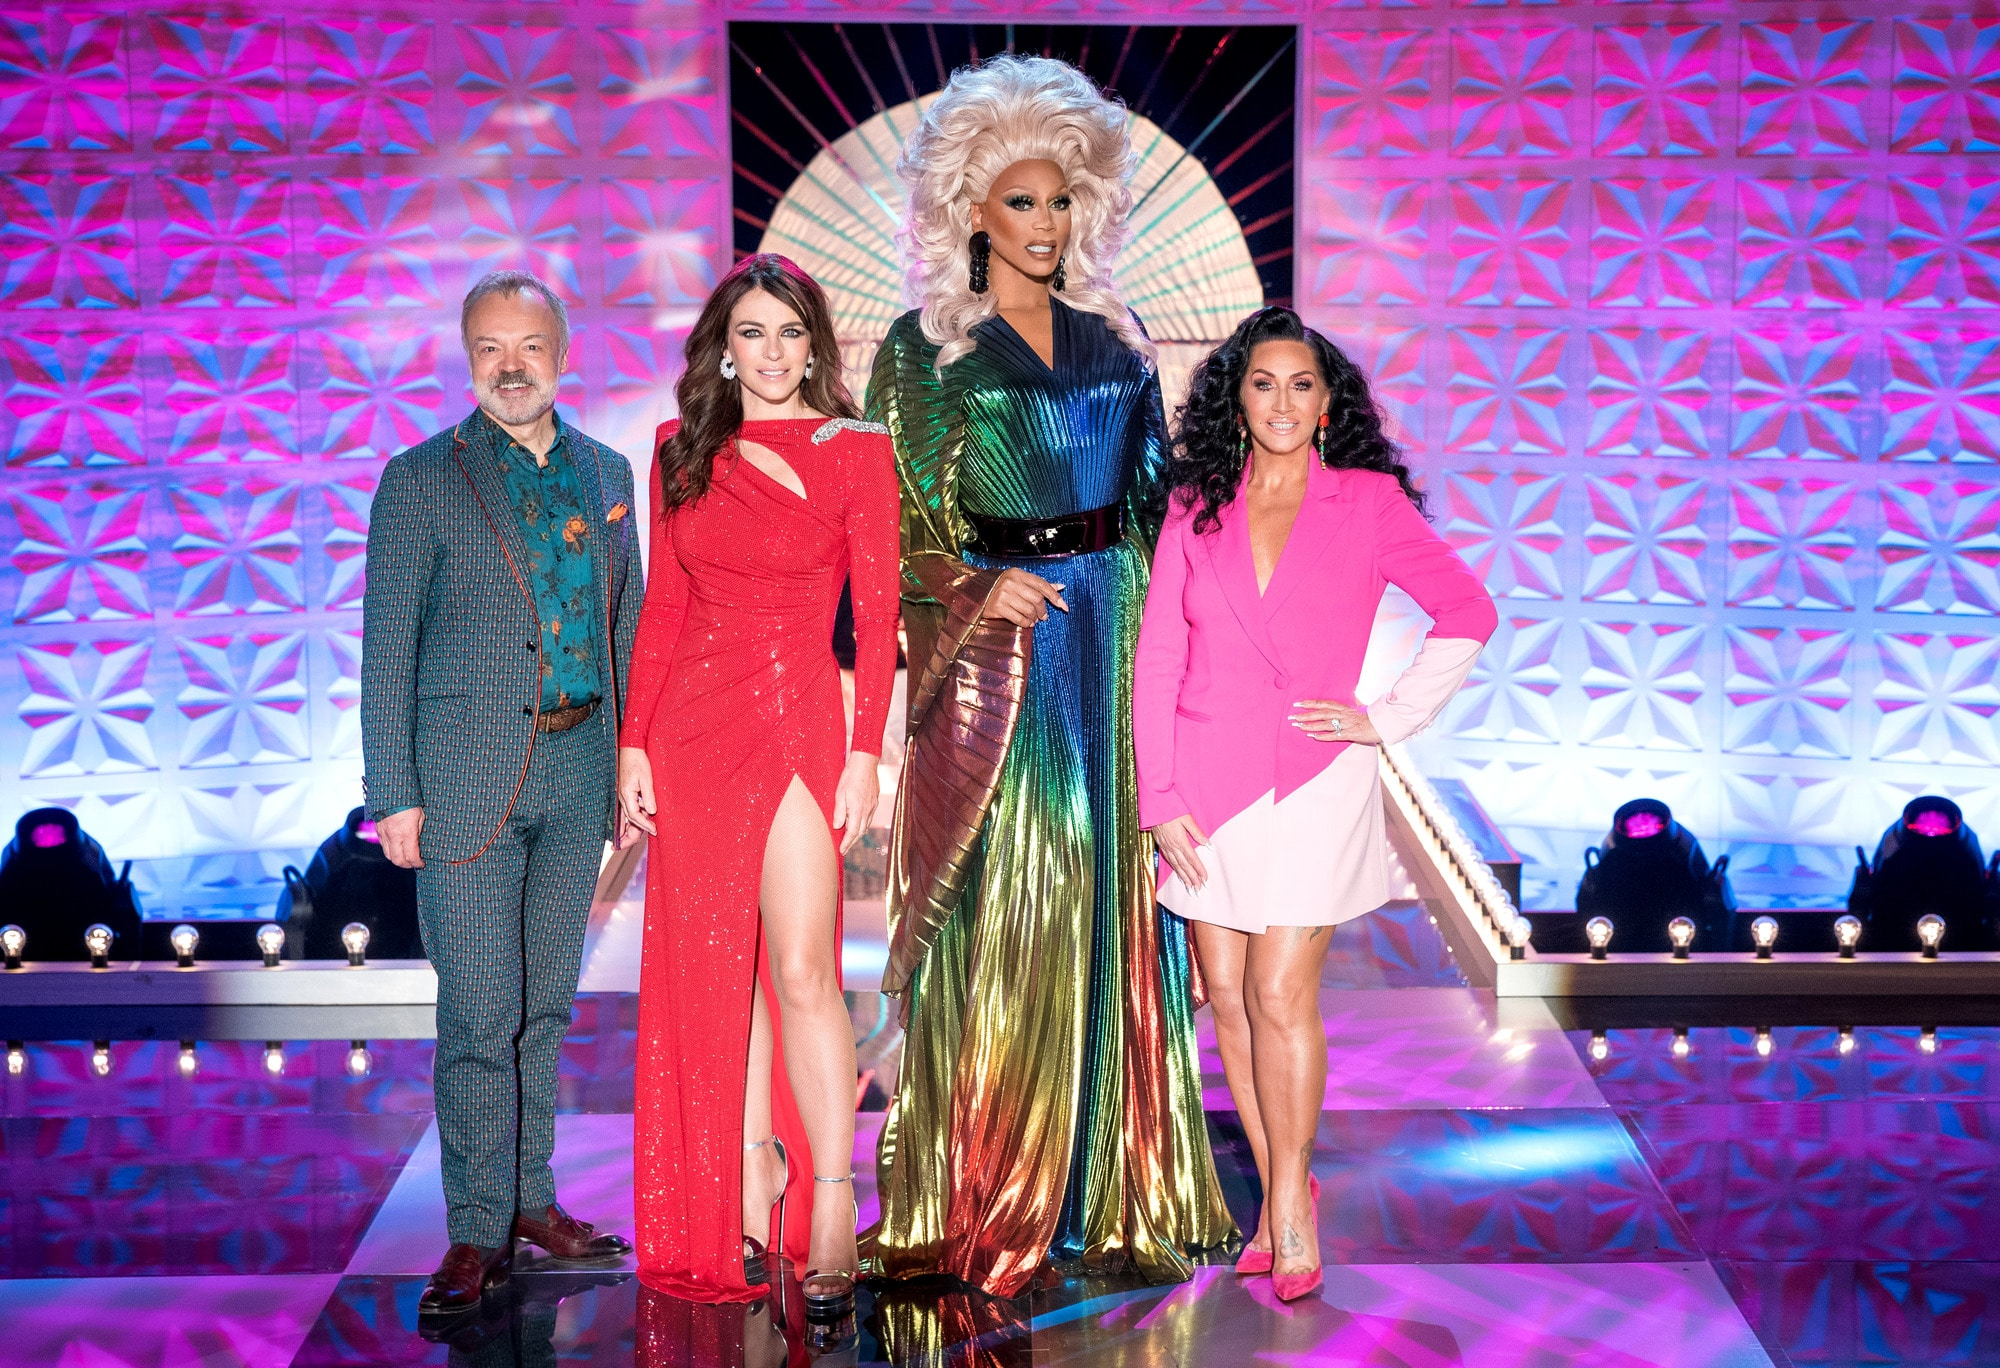 Graham Norton, Elizabeth Hurley, RuPaul and Michelle Visage on the main stage of Drag Race UK